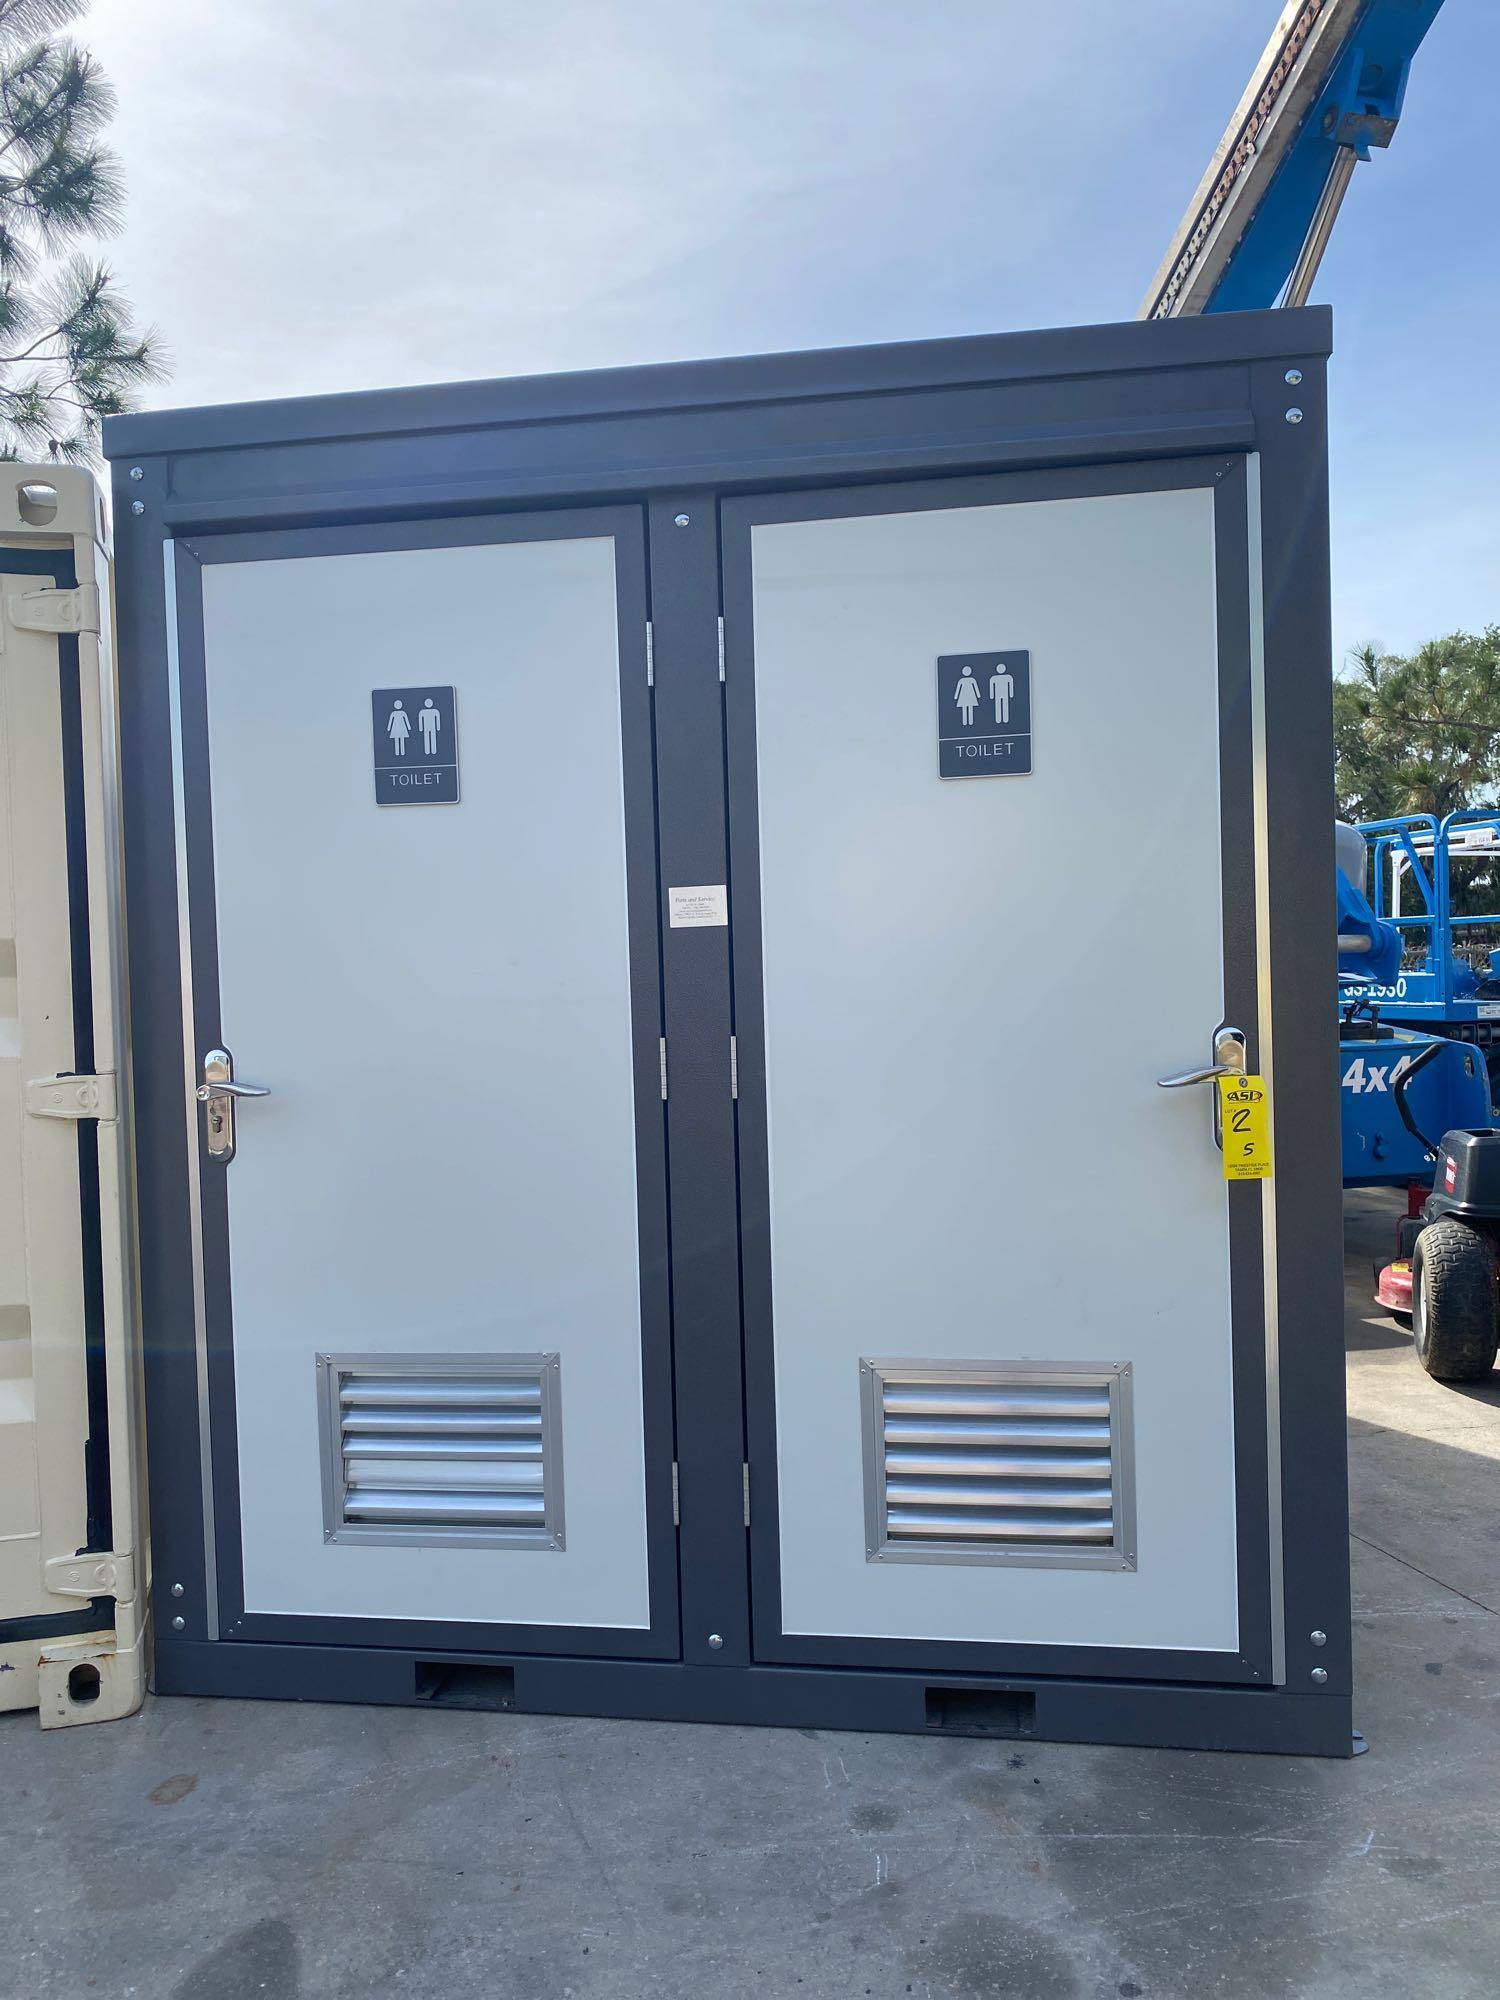 """NEW/UNUSED PORTABLE BATHROOM UNIT, TWO STALLS, PLUMBING AND ELECTRIC HOOKUP, 81"""" WIDE 90"""" TALL 51"""" D - Image 2 of 6"""